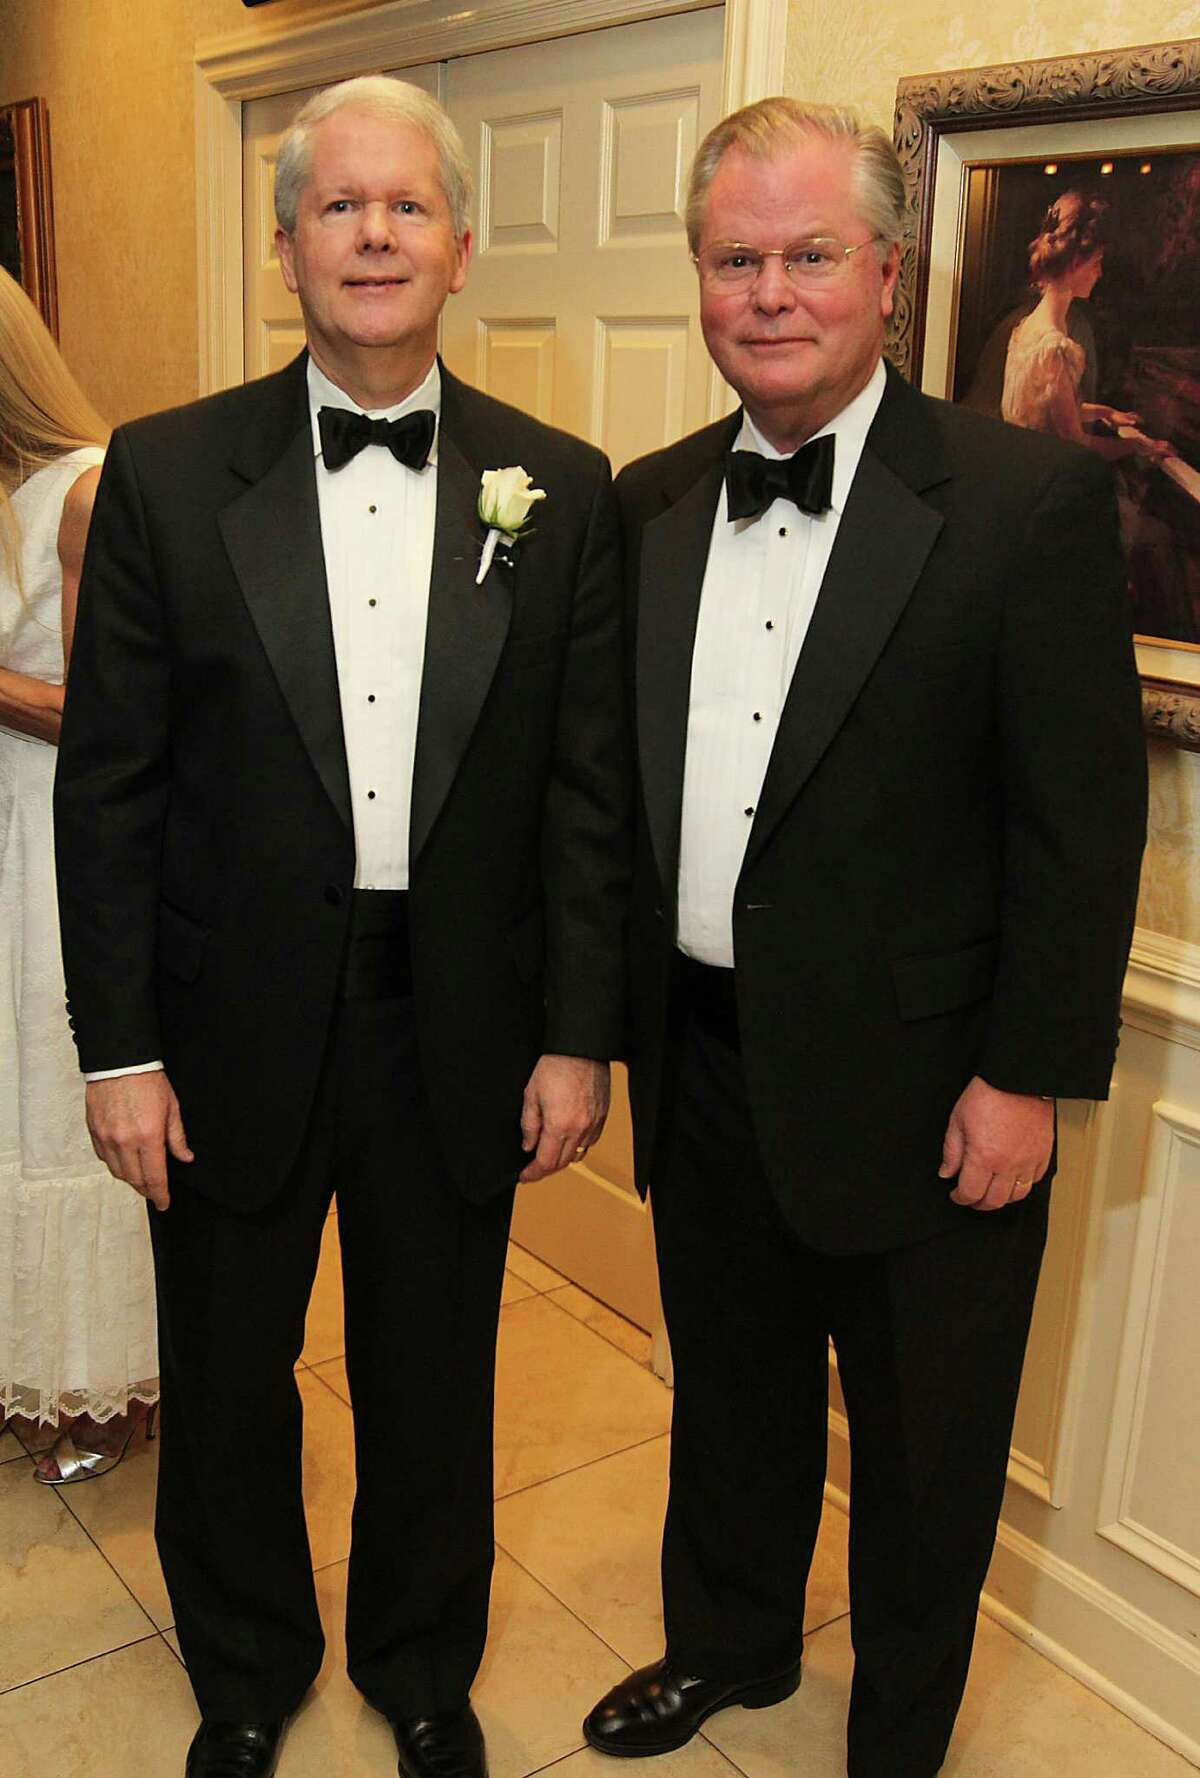 Were you Seen at the 10th Annual Ellis Medicine Winter Gala to benefit the Ellis Medicine Golub Center for Emergency Care at Glen Sanders Mansion in Scotia on Saturday, January 26, 2013?